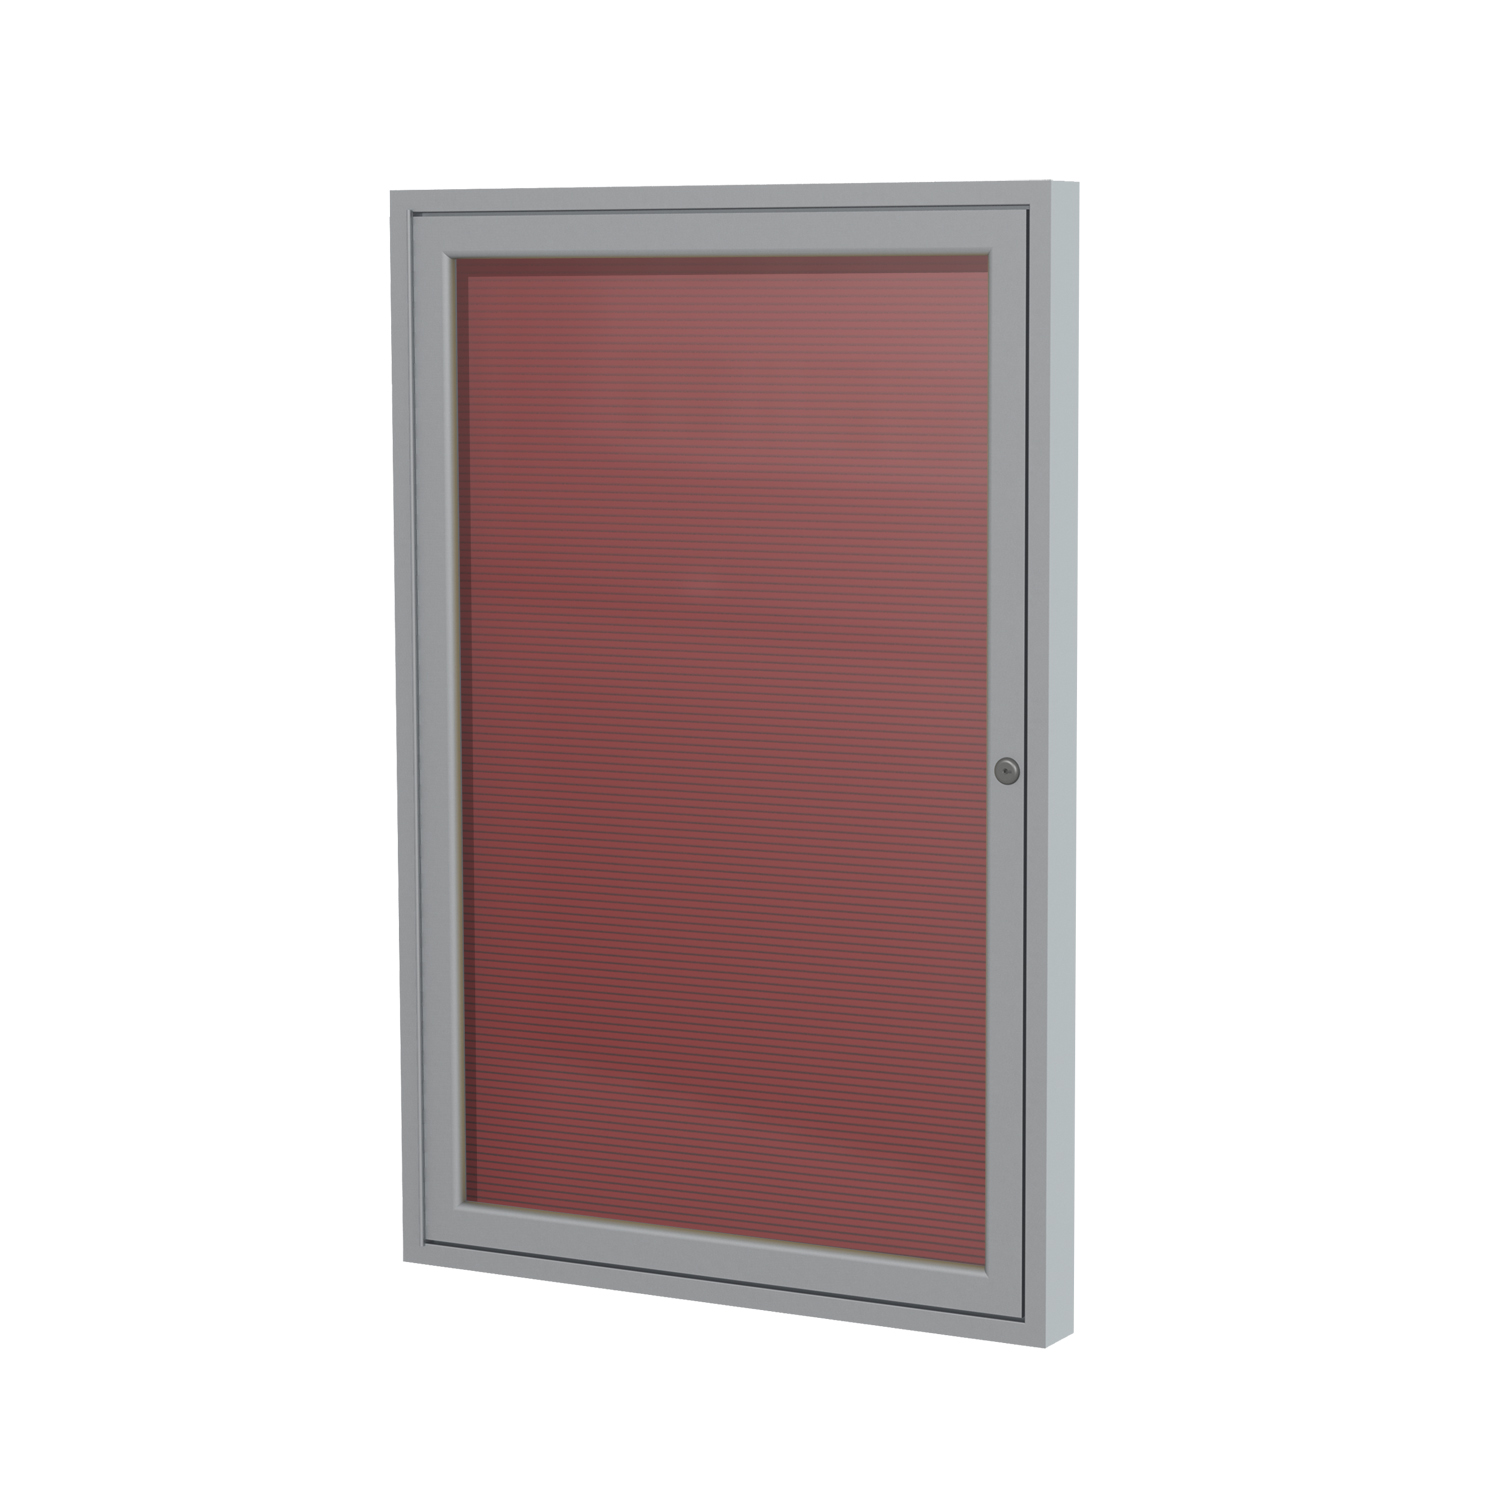 PA12418B-BG Ghent 1 Door Enclosed Traditional Satin Aluminum Frame Message Center Letter Board 24-in H x 18-in W, Burgundy